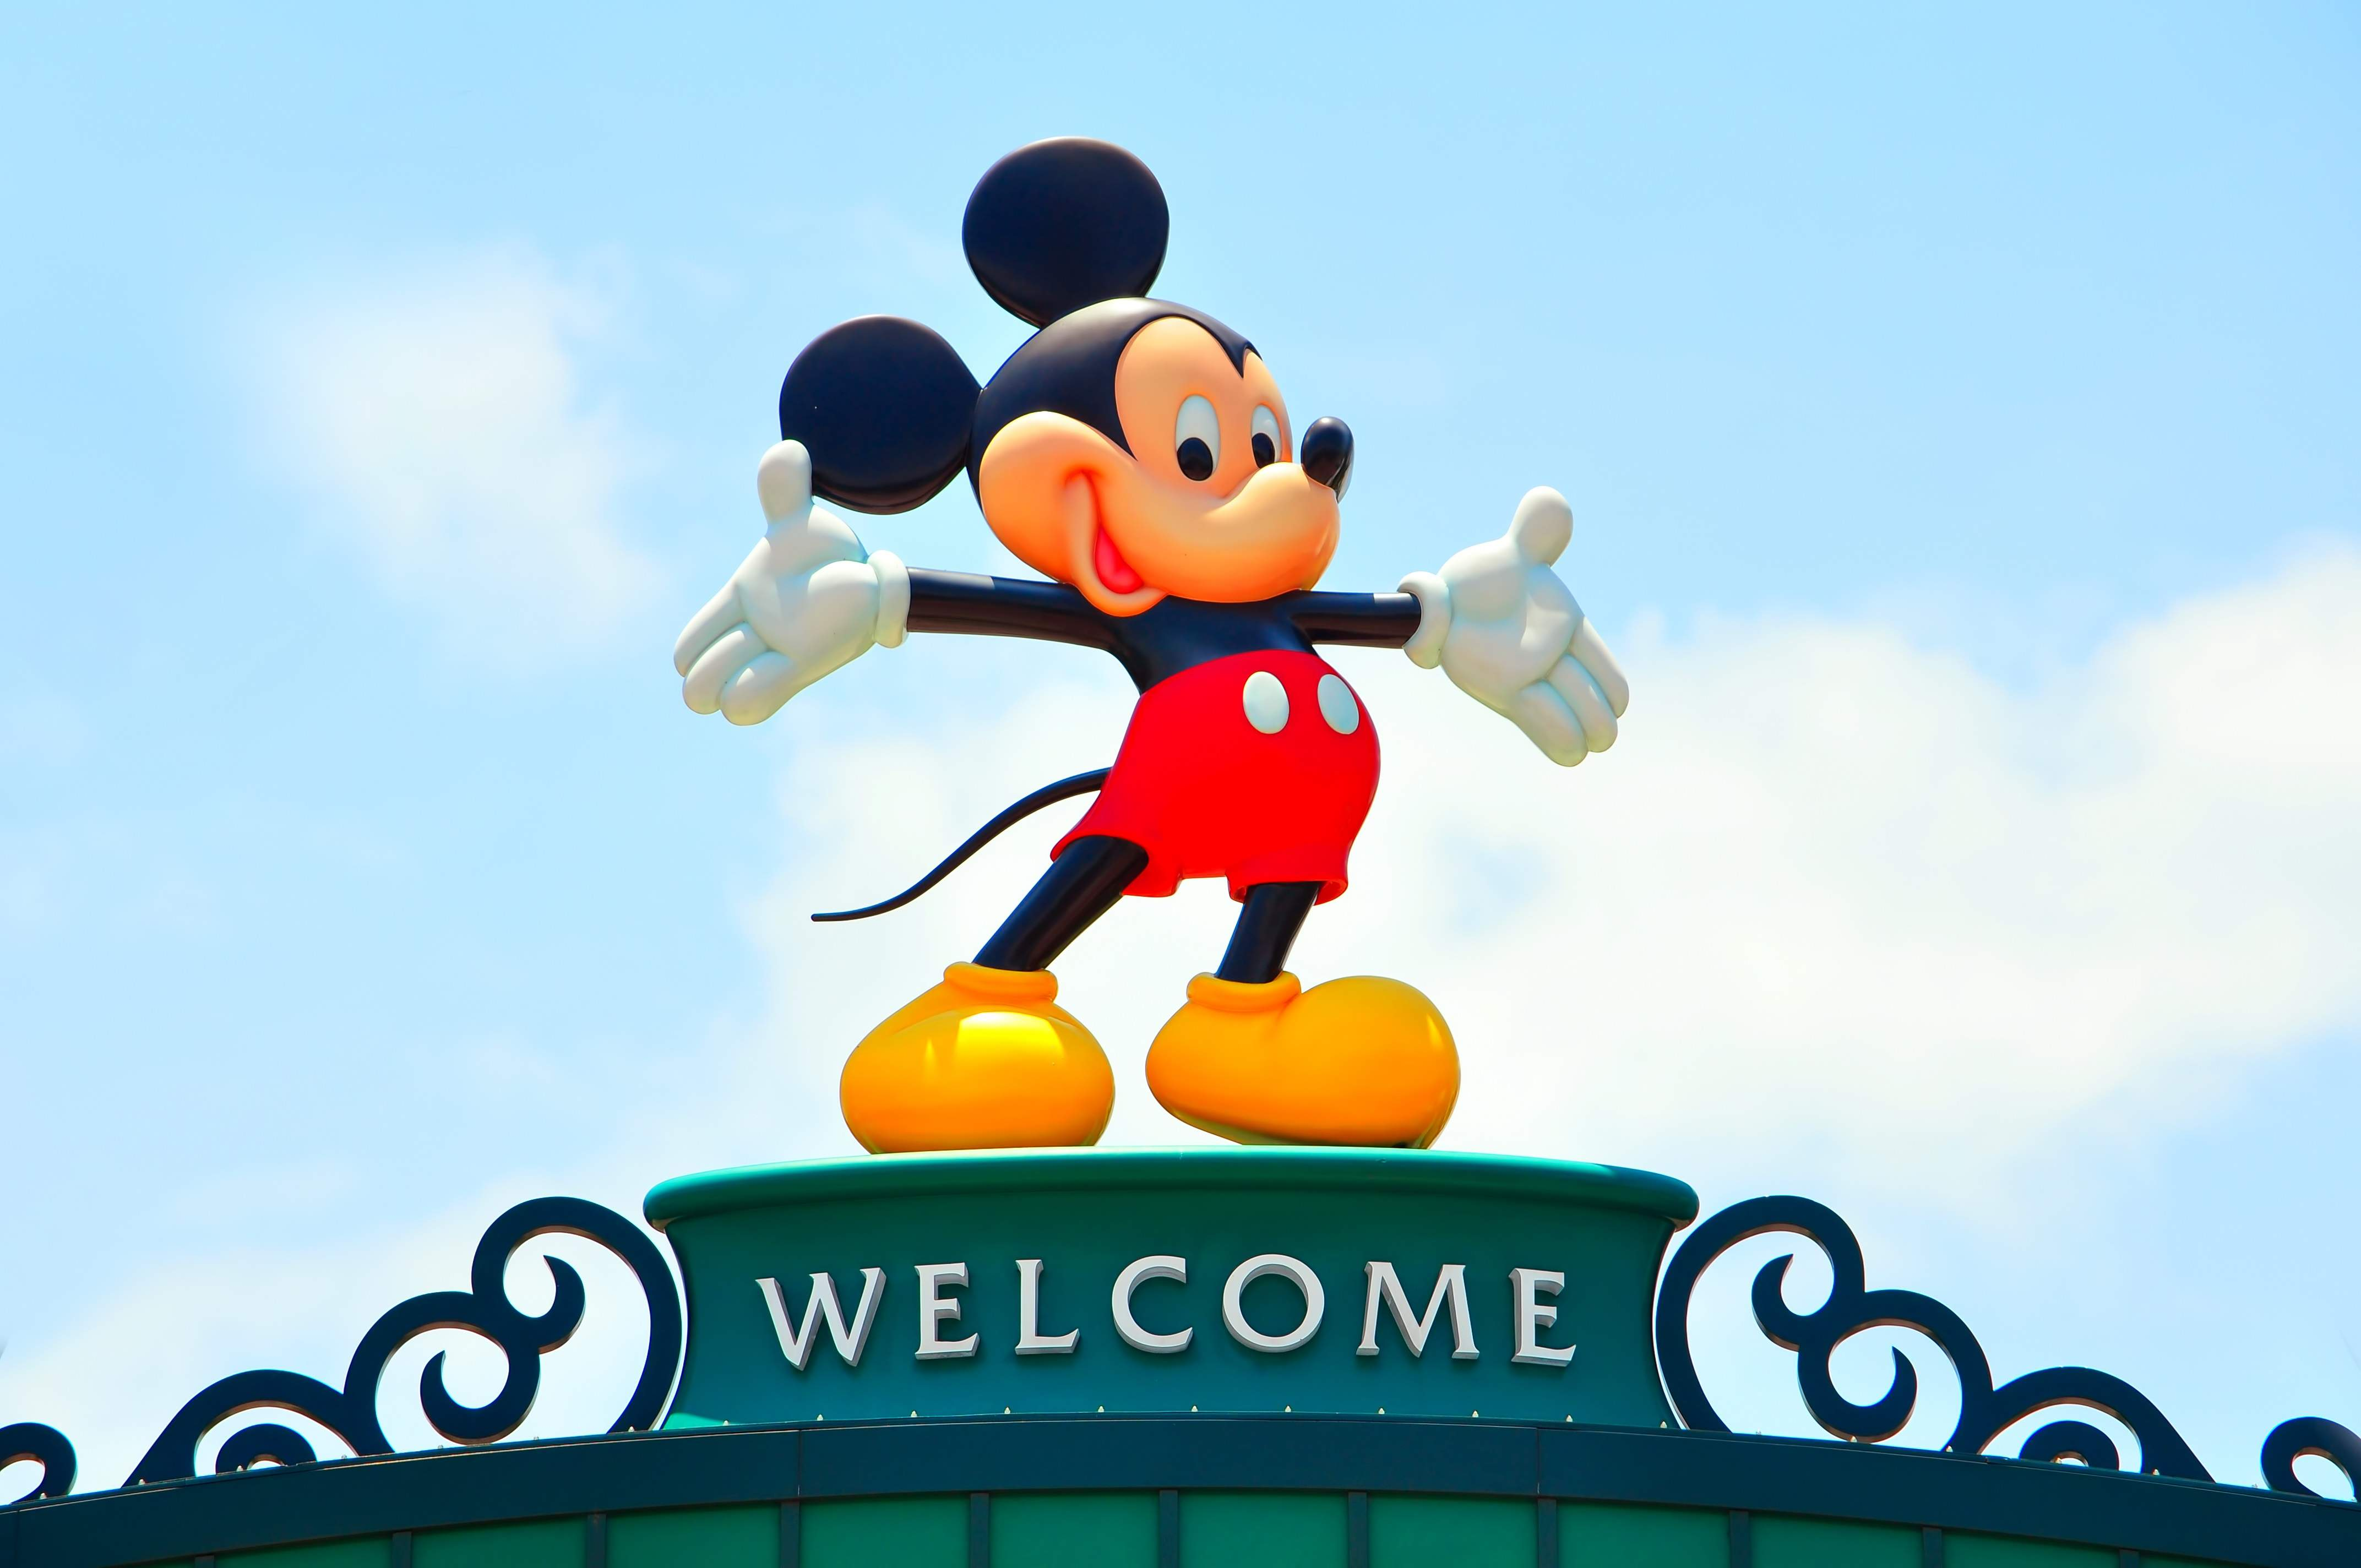 mickey-mouse-1-dreamstime-1.jpg